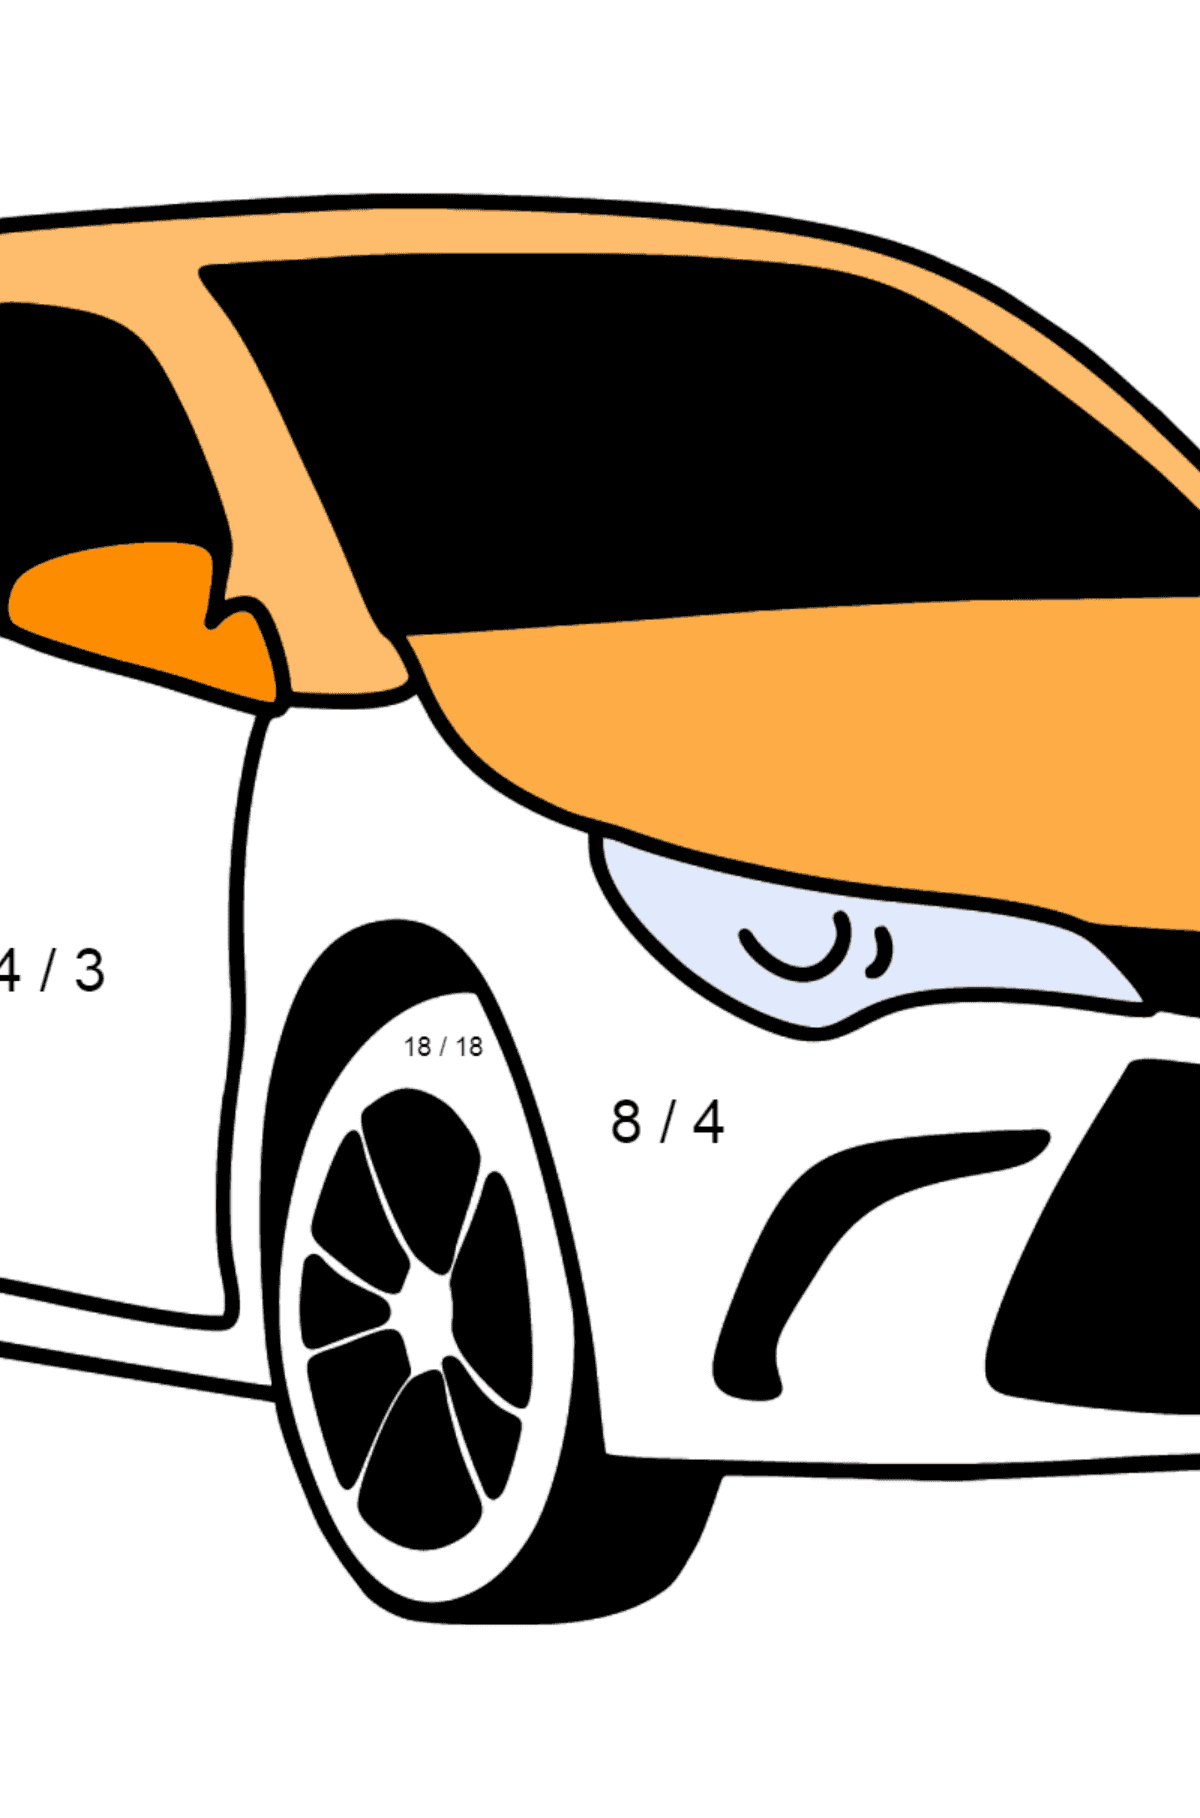 Toyota Camry coloring page - Math Coloring - Division for Kids